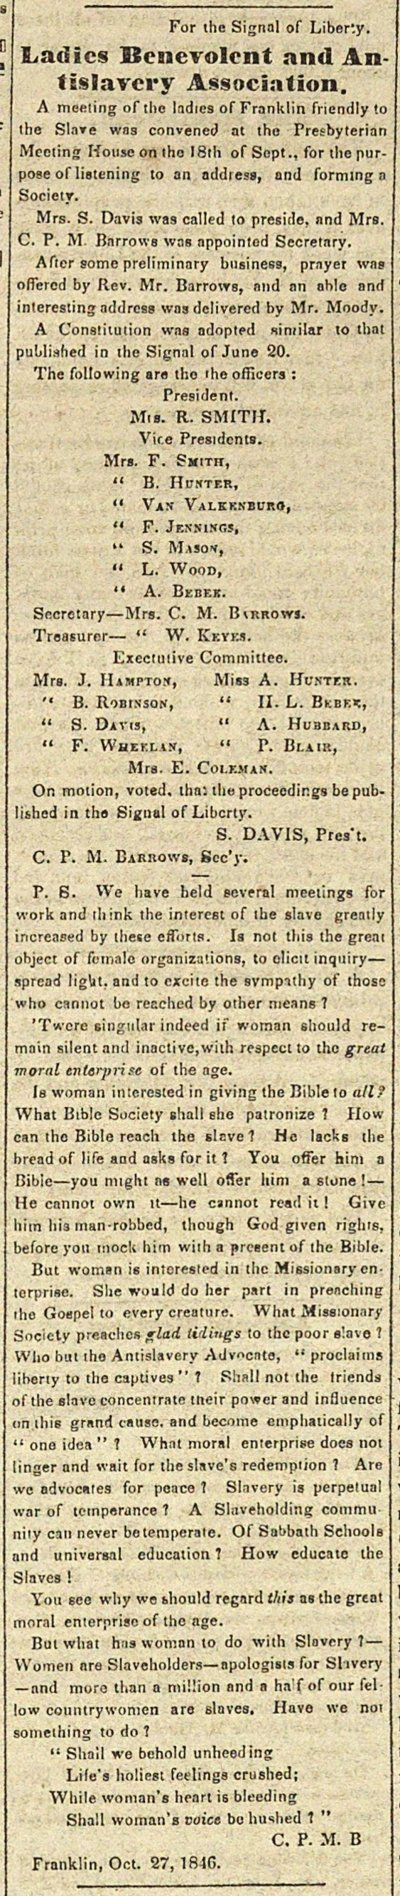 Ladies Benevolent And Antislavery Association: For The Signa... image